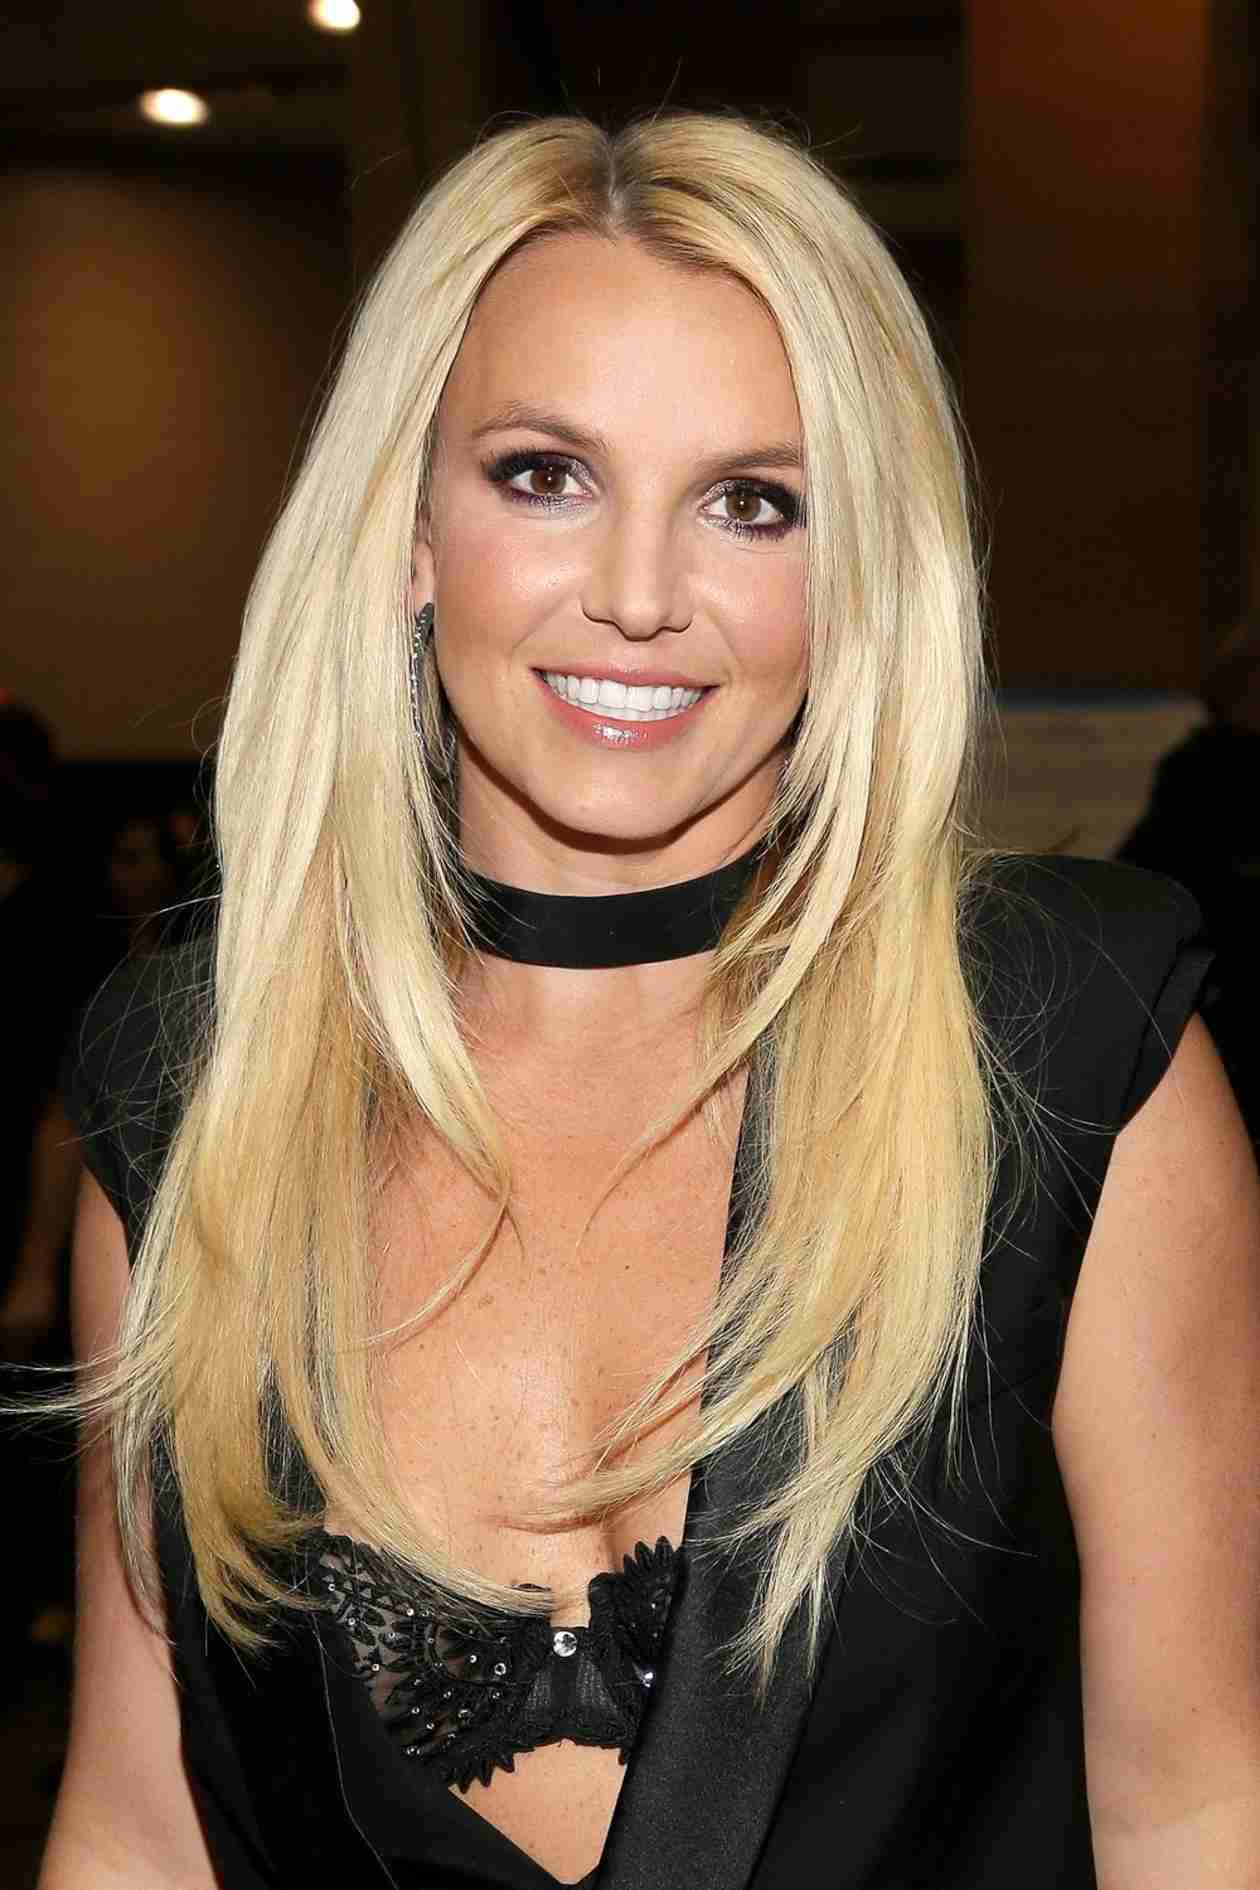 Britney Spears Spent More Than $30K on Her Pets